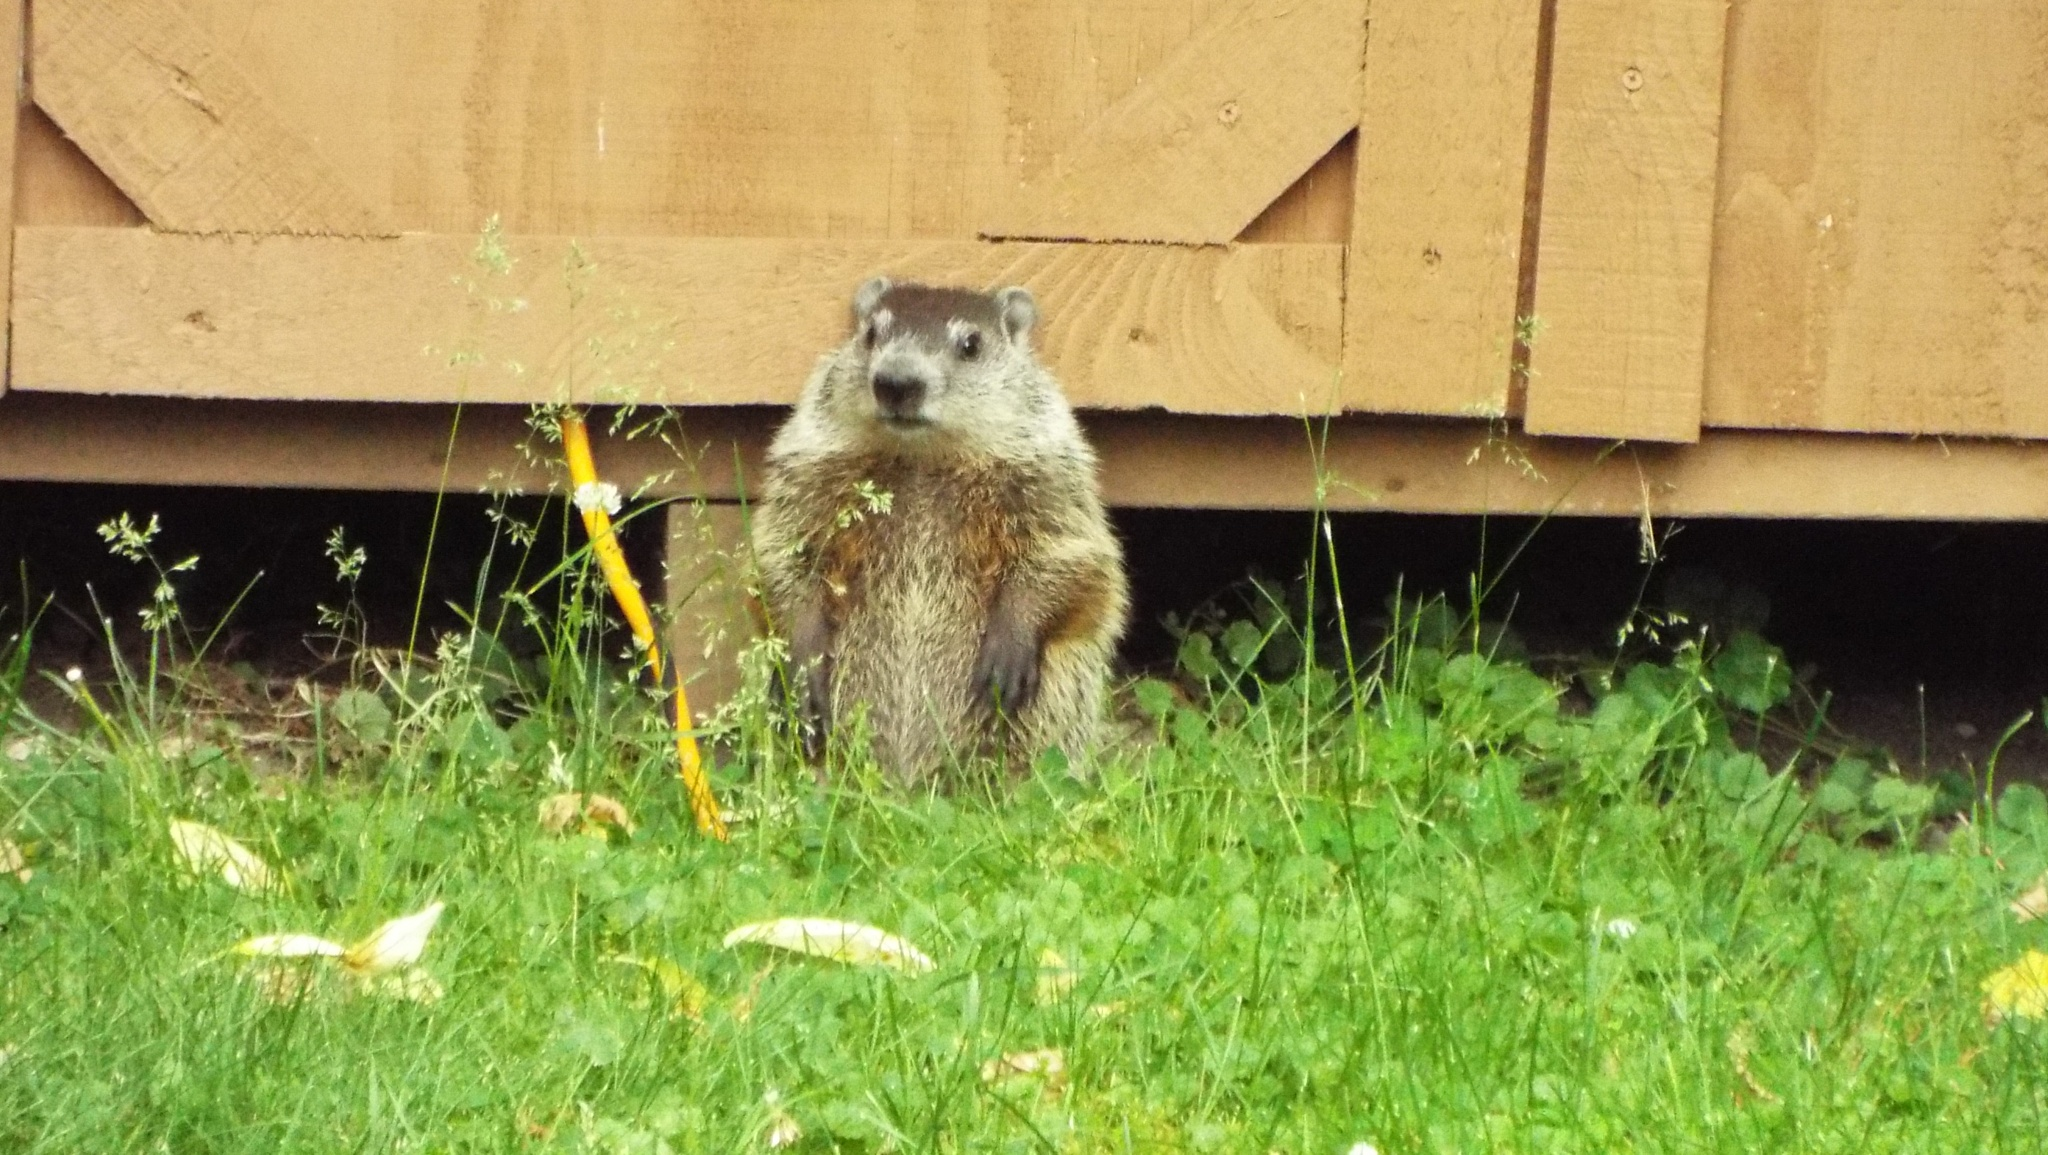 Young Groundhog. (Get my good side) by David F Cupp